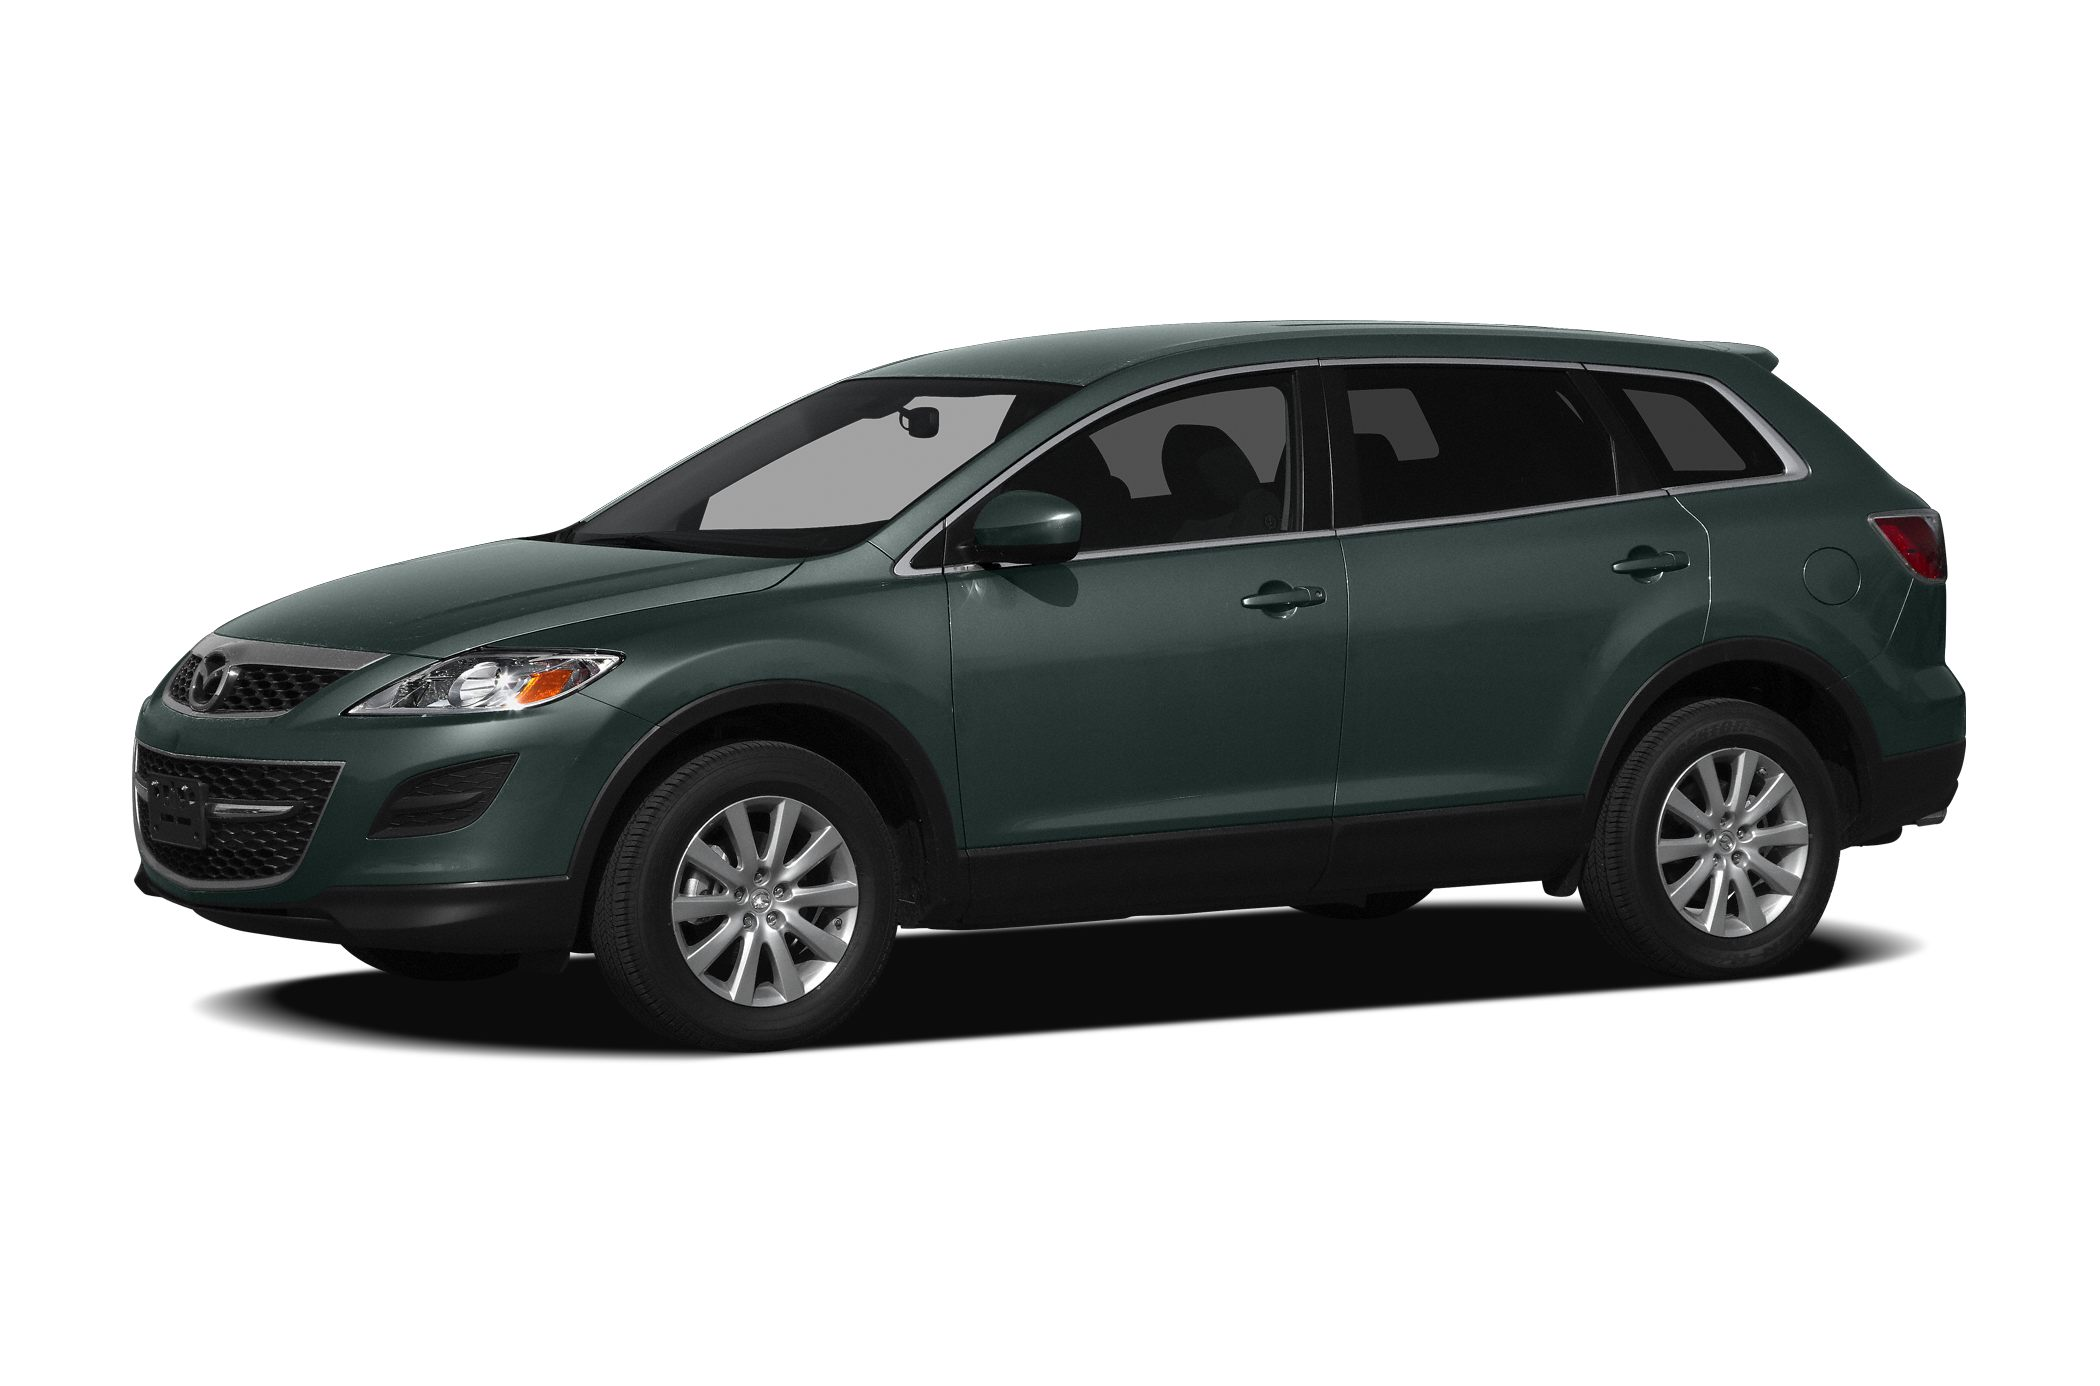 2012 Mazda CX-9 Sport SUV for sale in Cape Girardeau for $21,884 with 23,789 miles